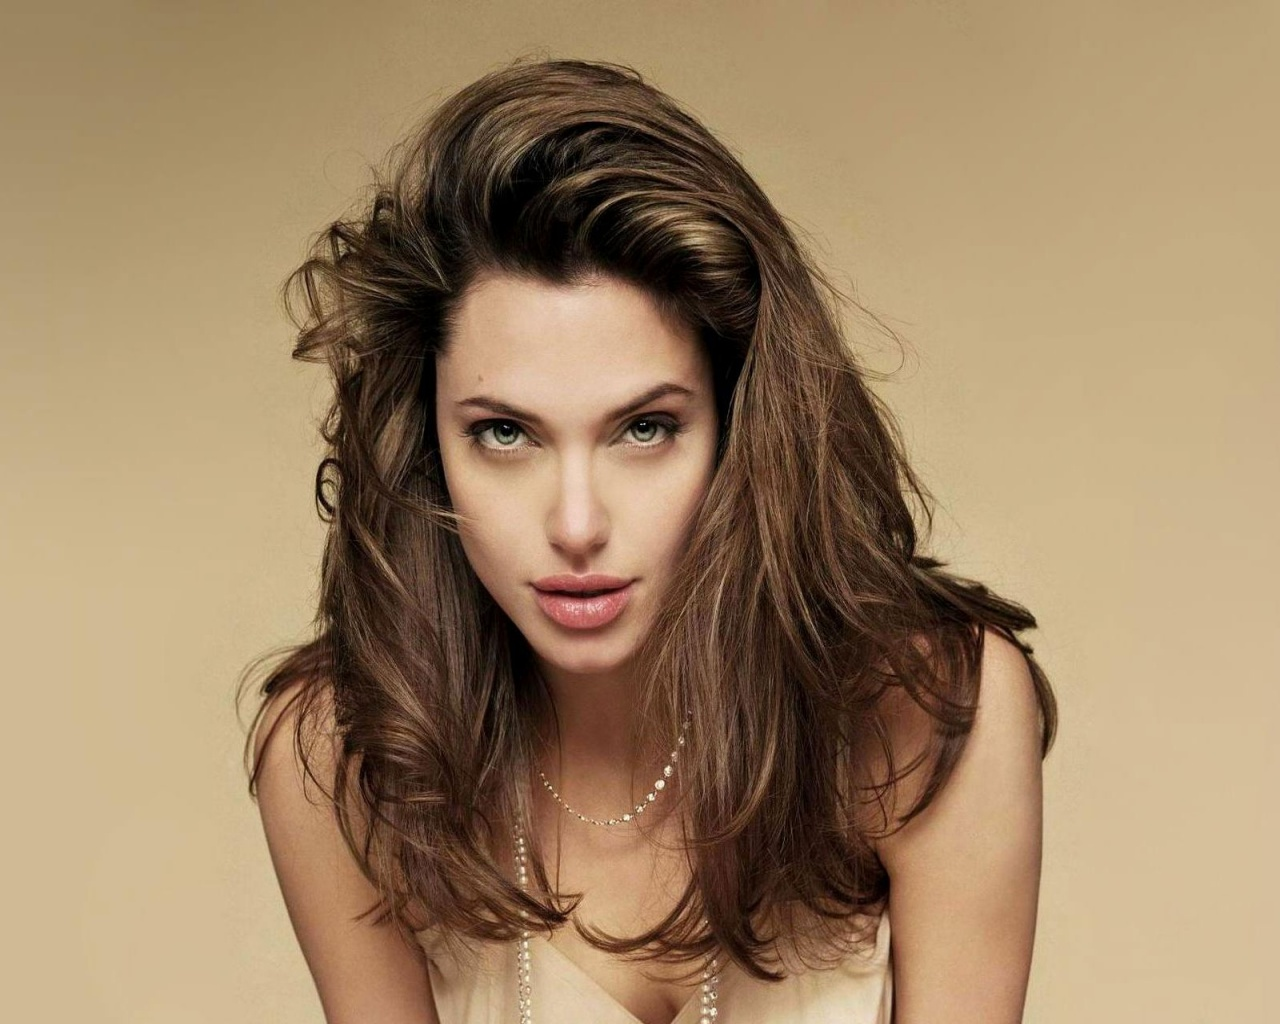 fast pics2: hot and hd nude real sexy wallpapers of angelina jolie